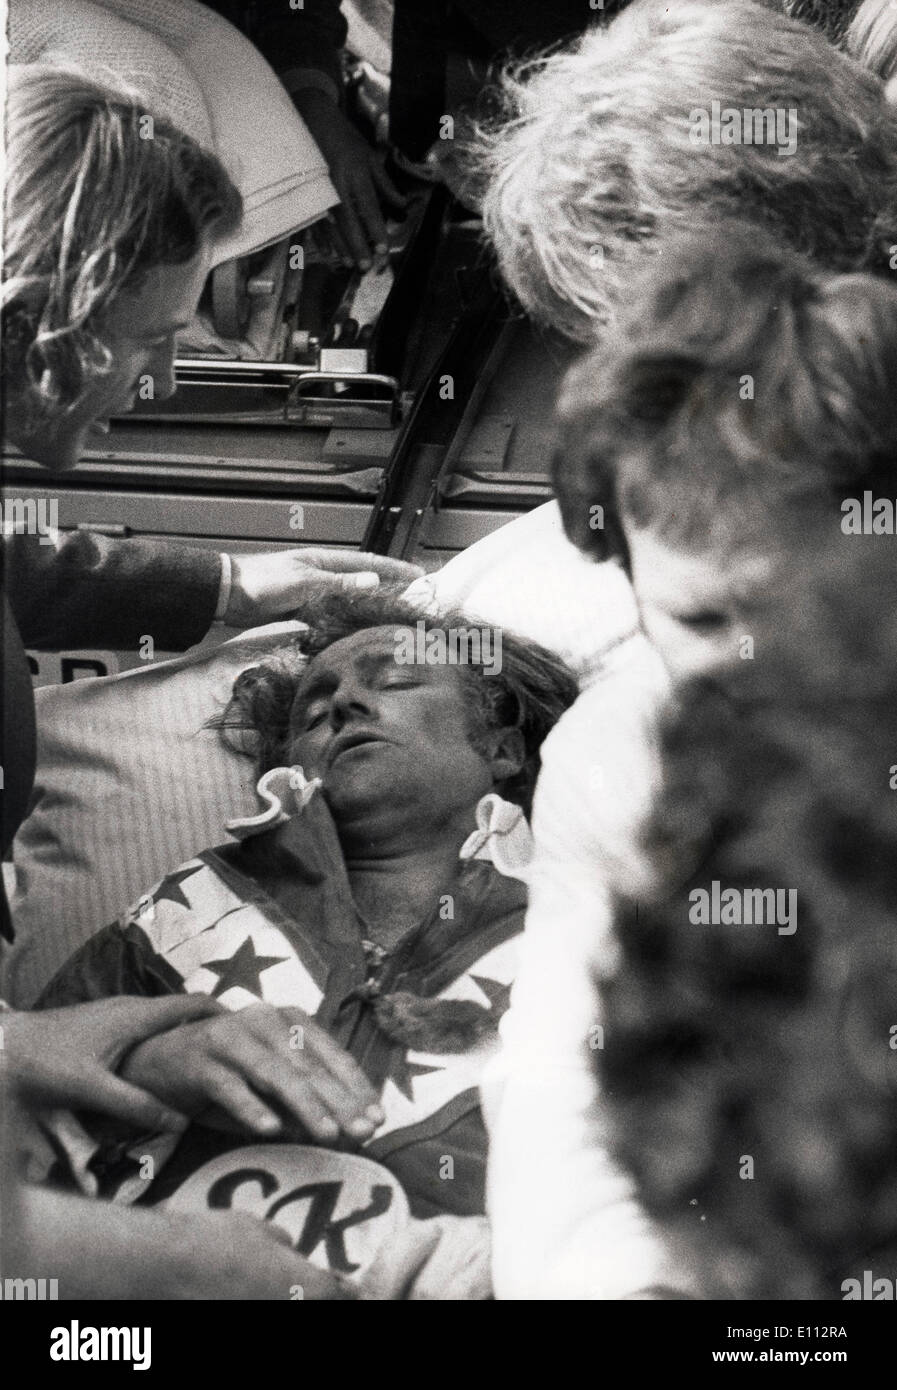 Daredevil Evel Knievel hospitalized after bus jump - Stock Image